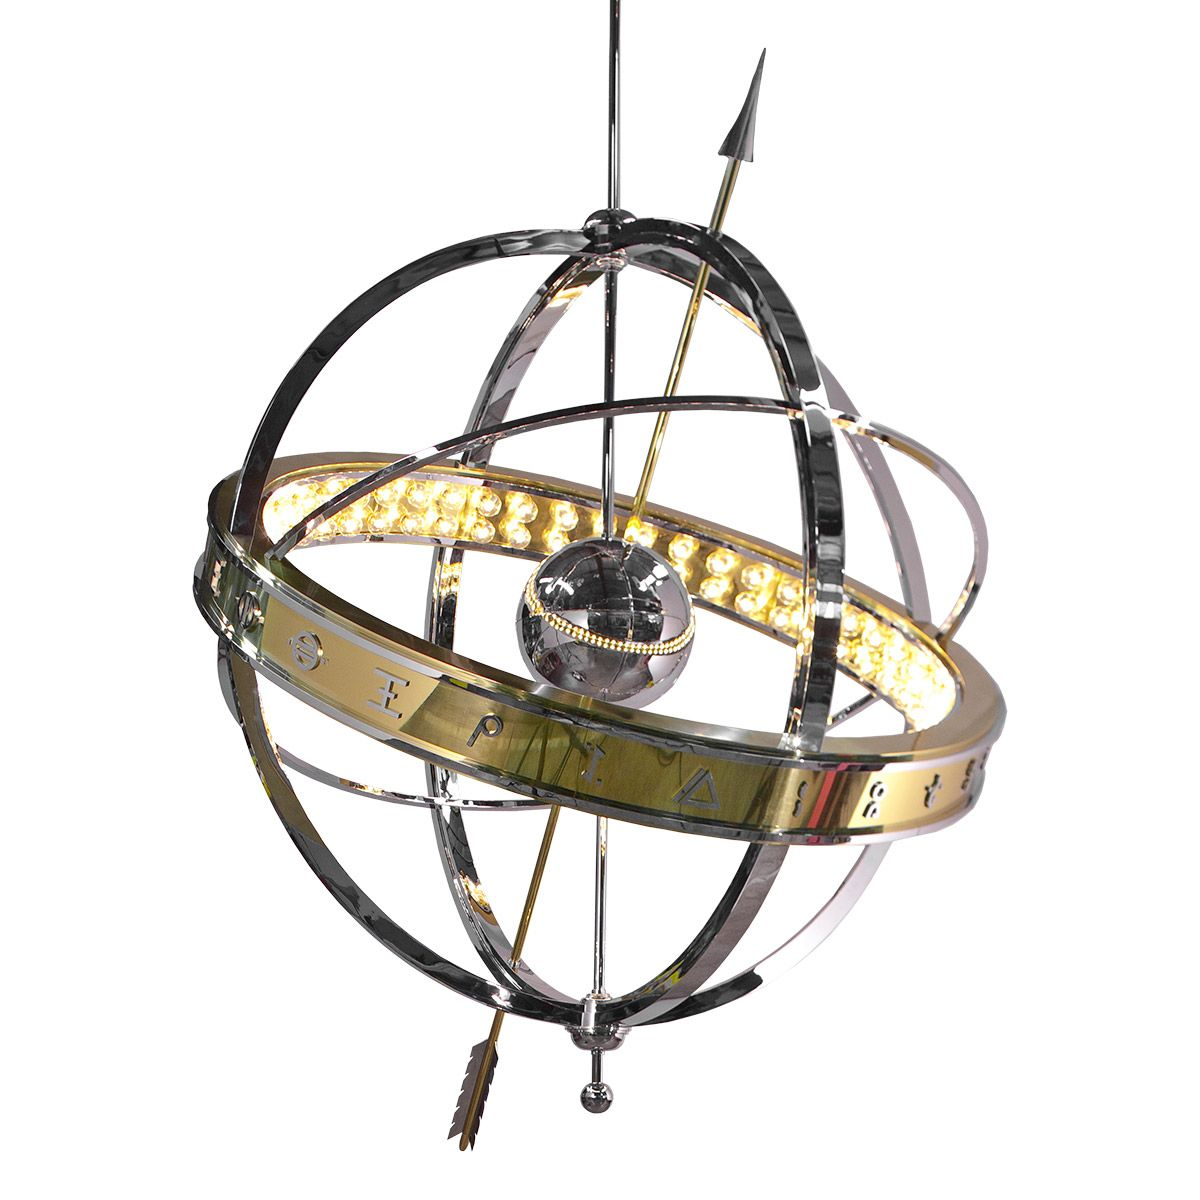 Lighting Products Are Made To Order In Our Studios Southwest Virginia Crenshaw